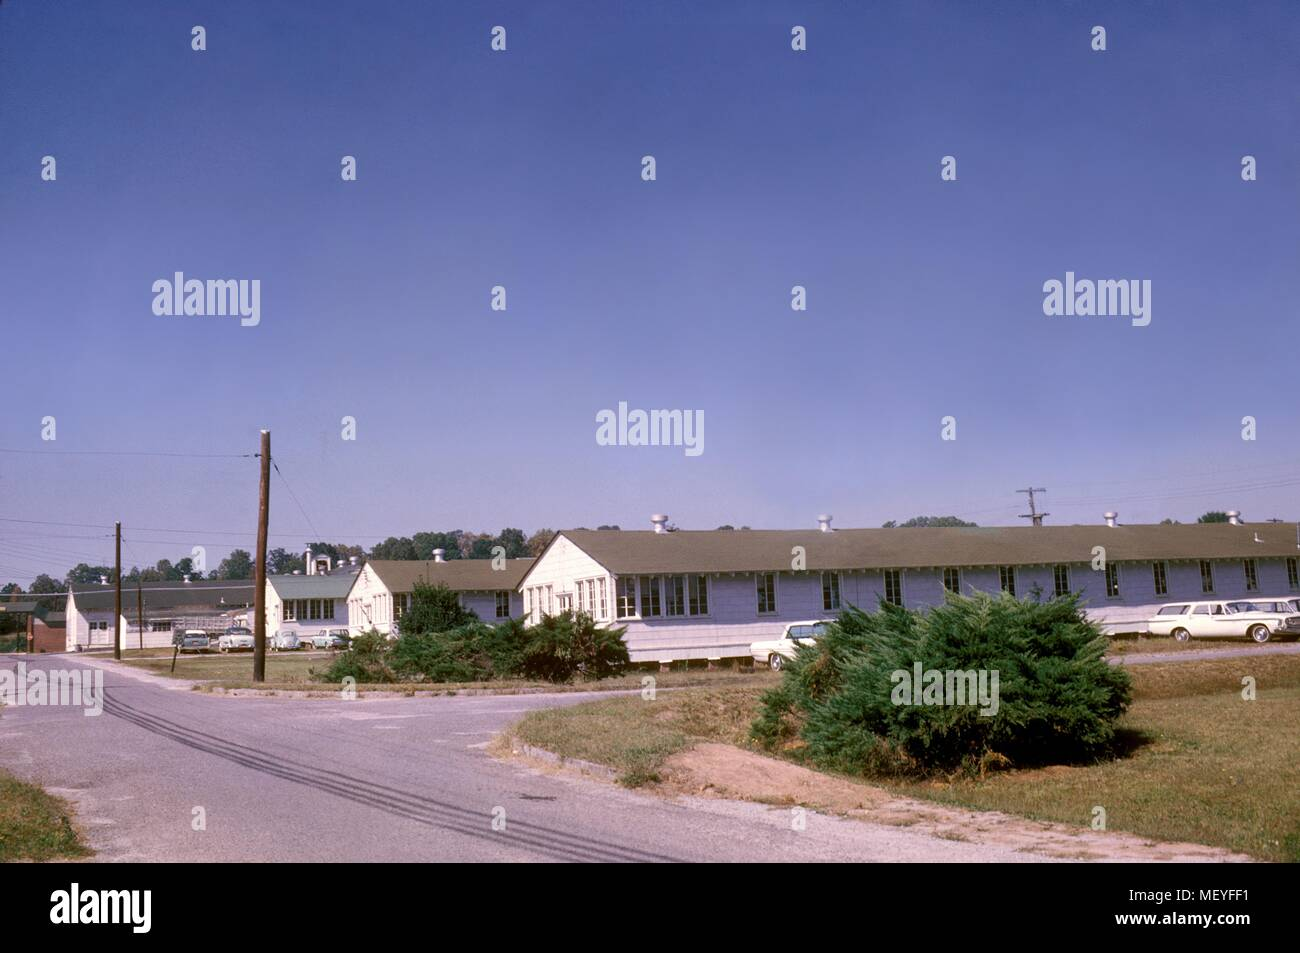 Street view of the Centers For Disease Control and Prevention (CDC) facilities, 1963. Image courtesy Centers for Disease Control. () - Stock Image